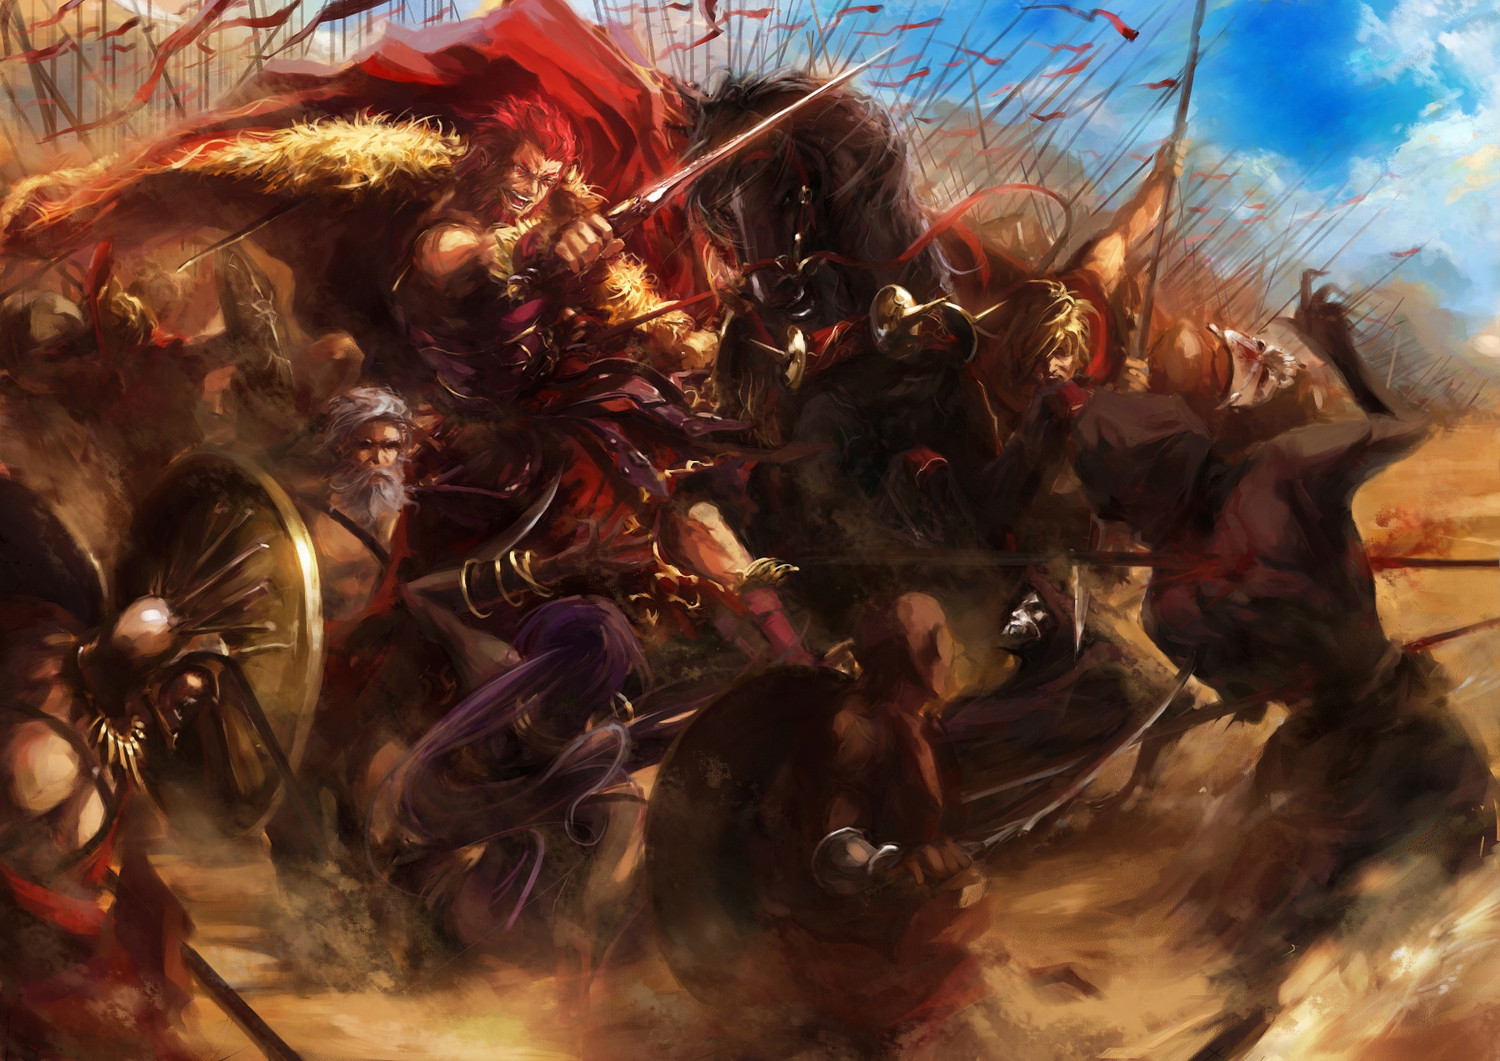 alexander_(fate) animal cape fate_(series) fate/stay_night fate/zero gray_hair group horse long_hair ponytail purple_hair red_eyes red_hair short_hair spear stu_dts sword true_assassin weapon